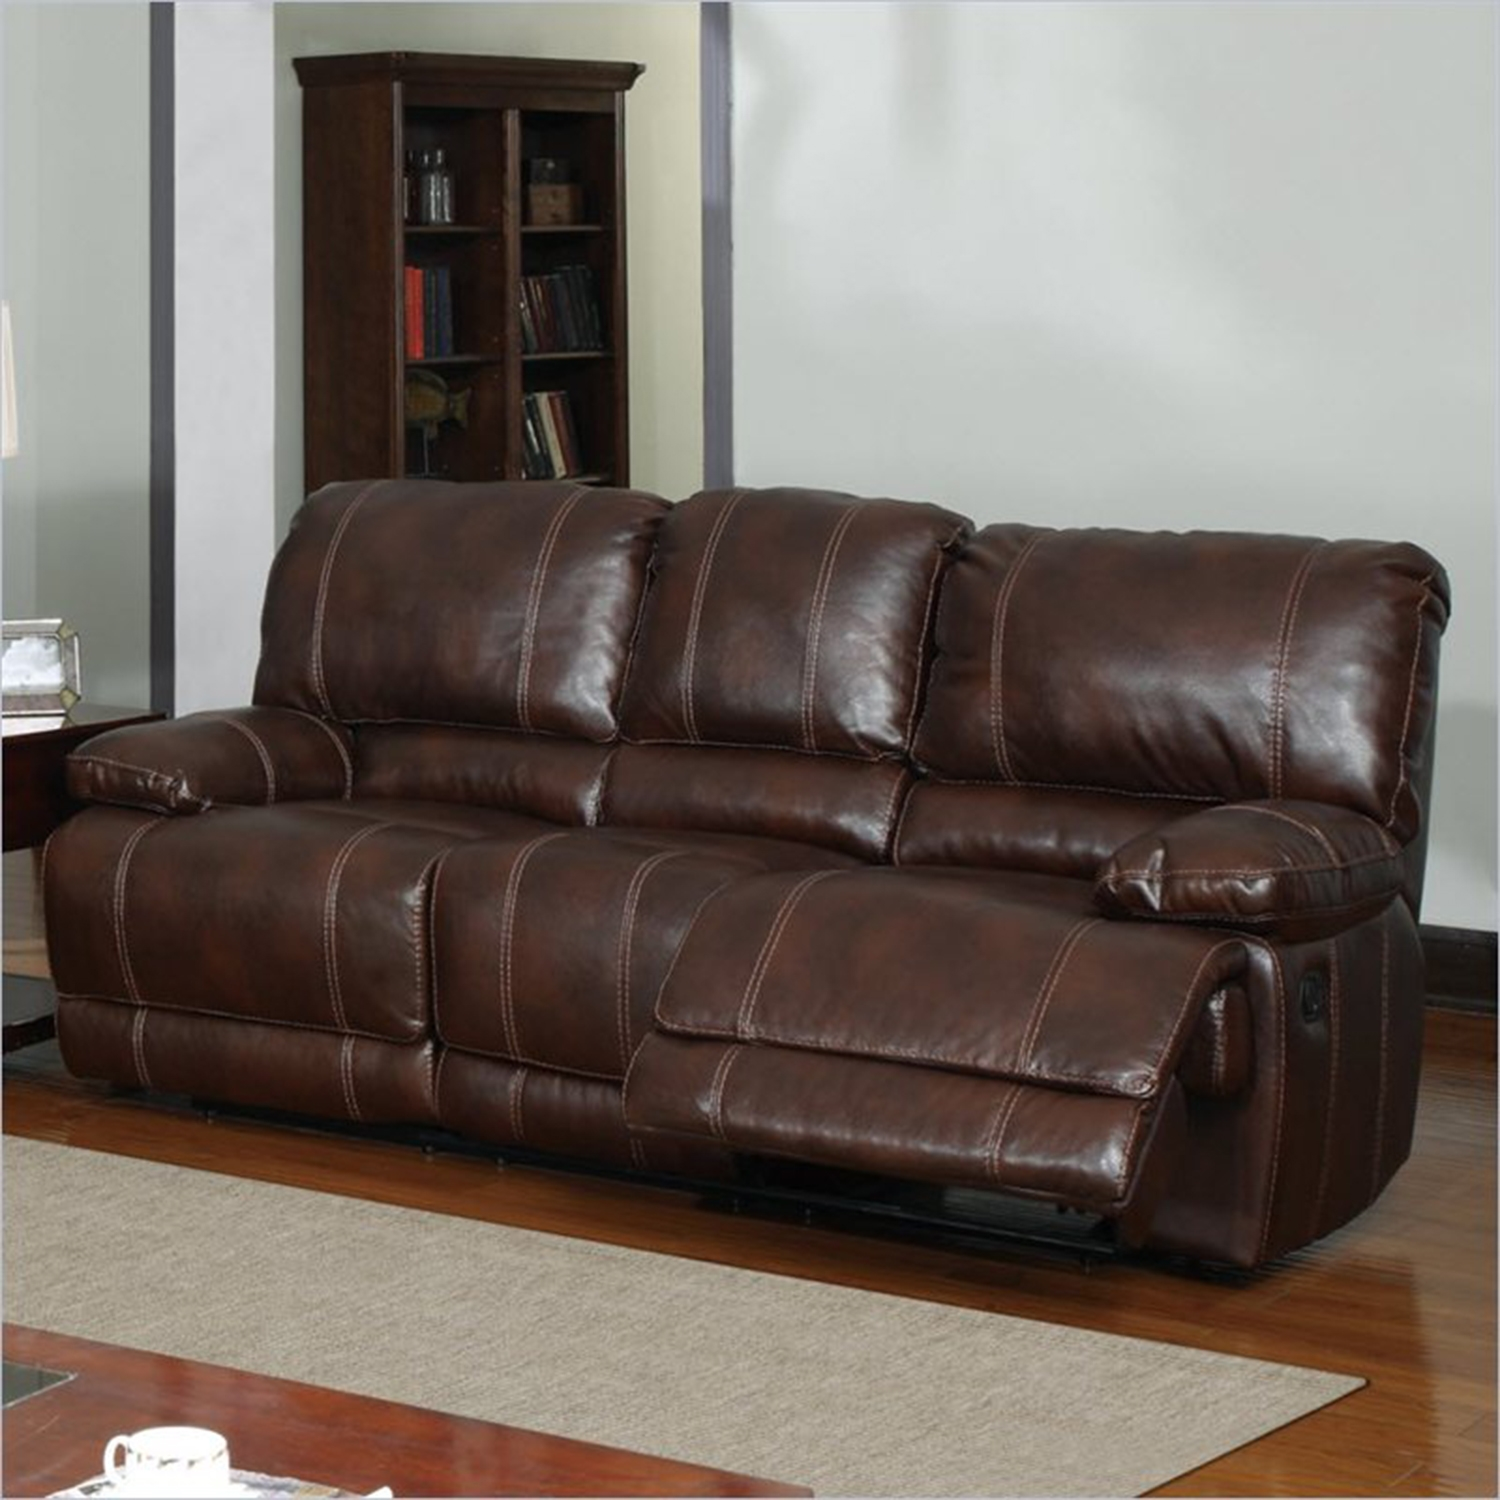 Cristian Recliner Sofa Set in Brown Leather - GLO-U1953-SET2